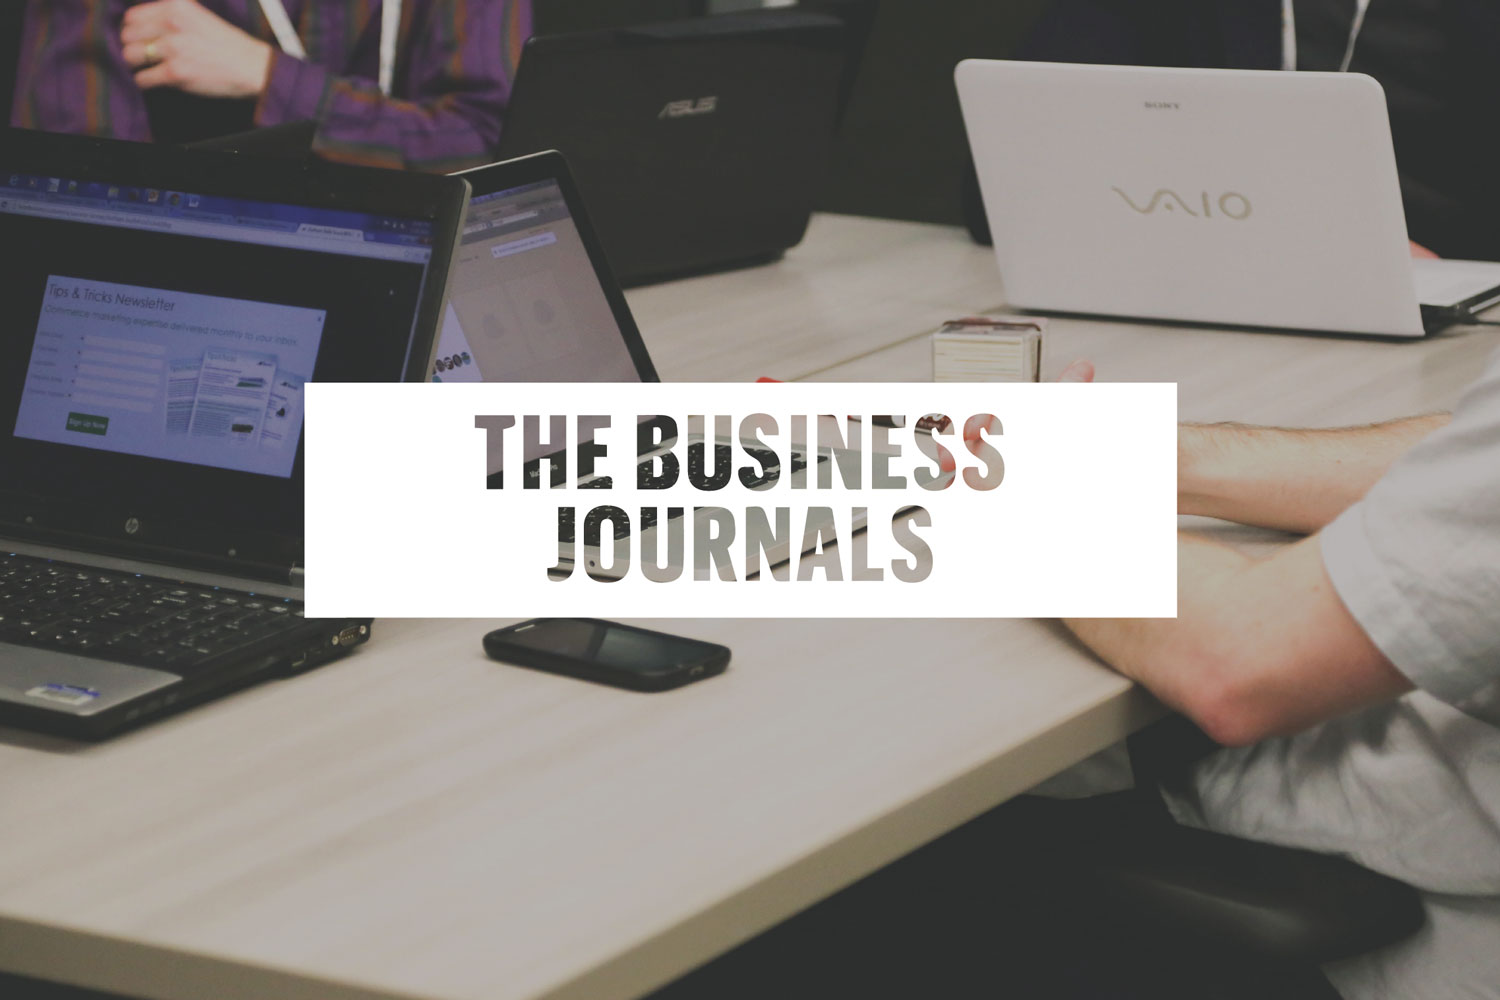 The Business Journals Articles